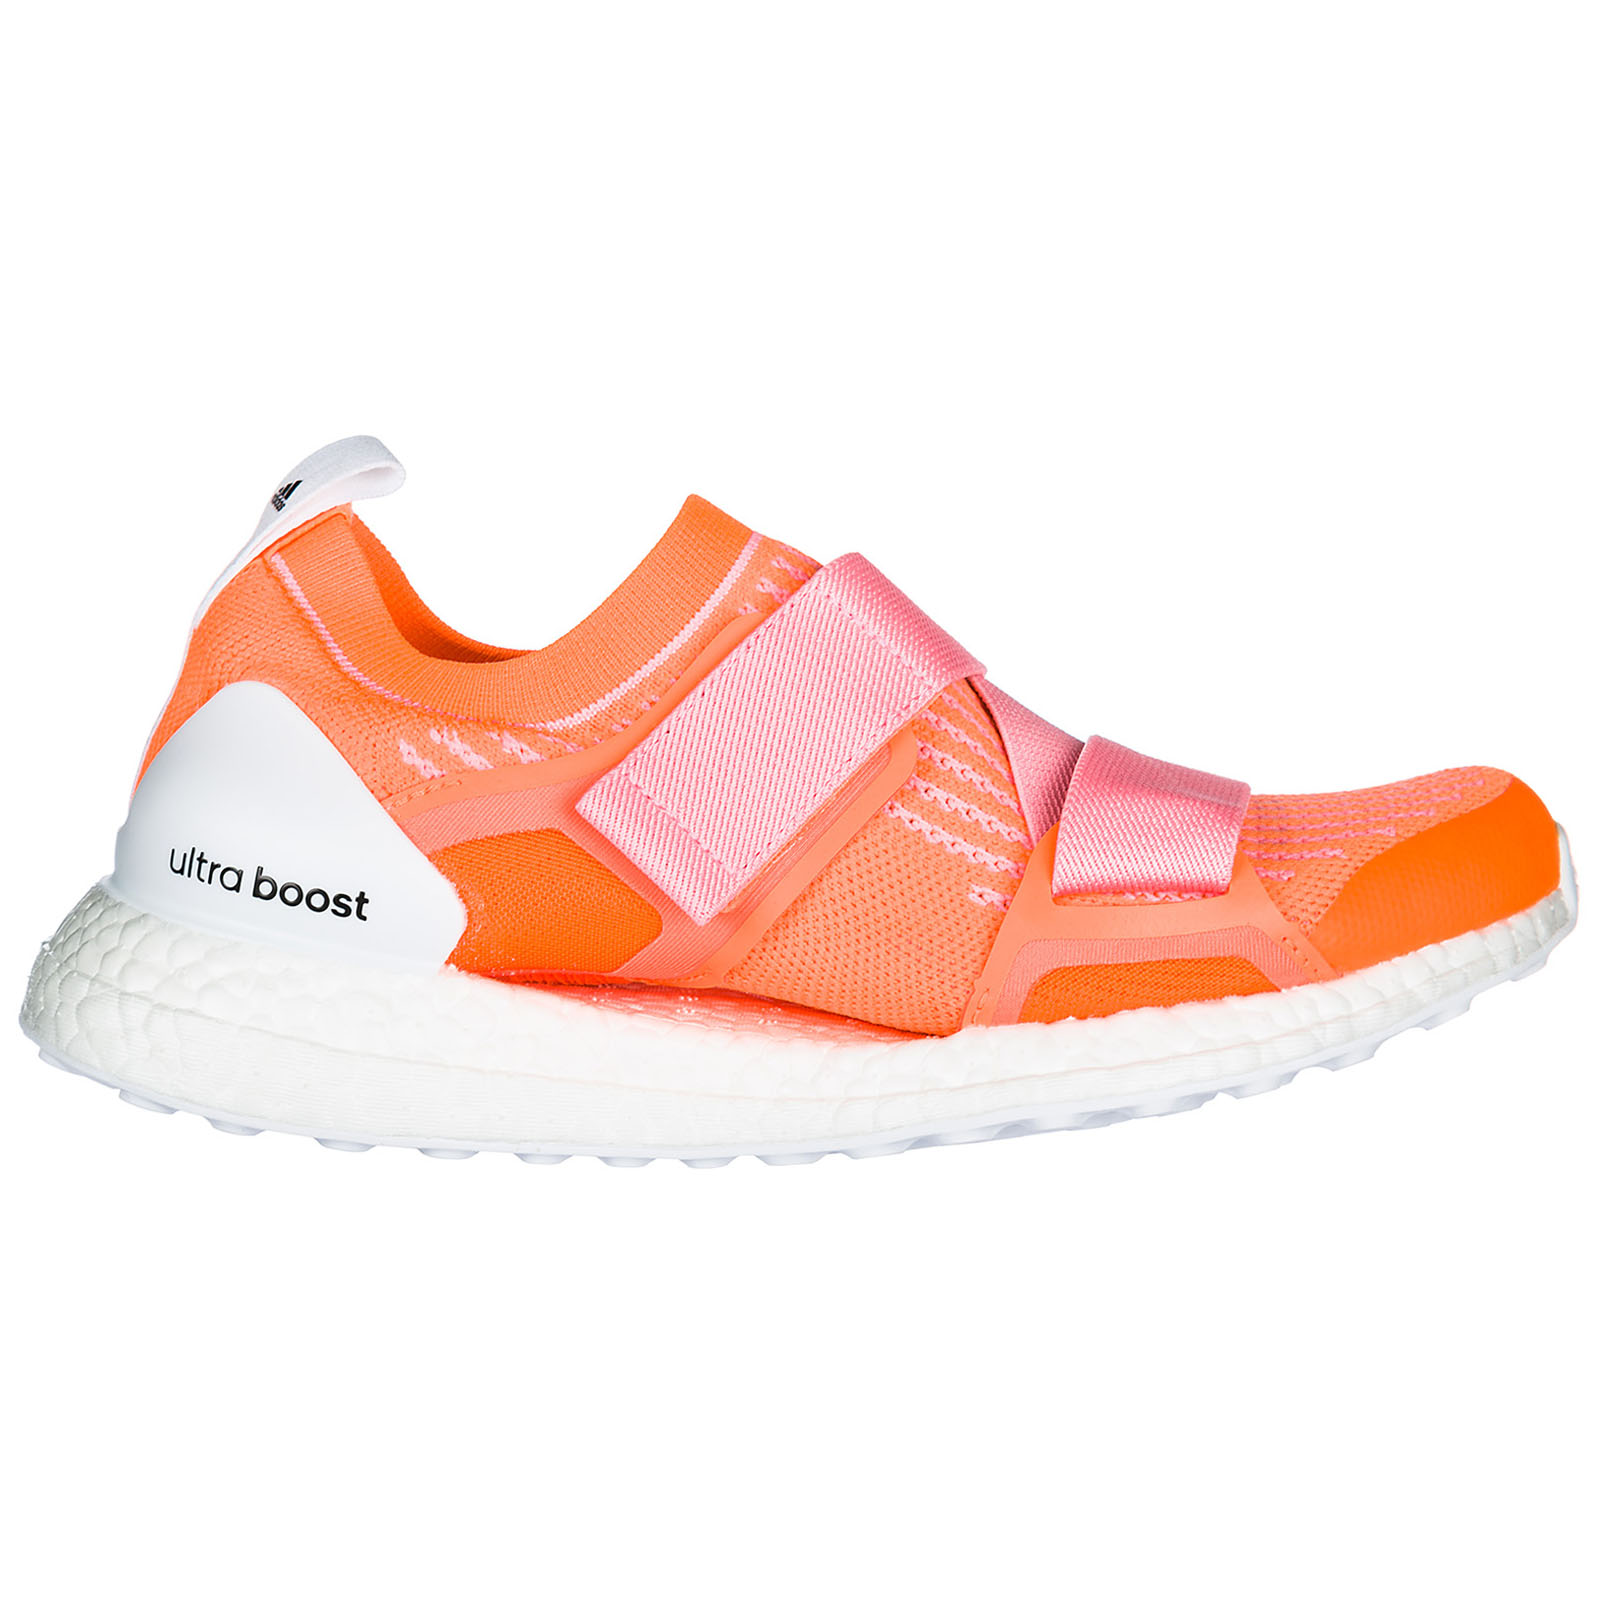 quality design cd3a4 4caab Adidas by Stella McCartney Women s shoes trainers sneakers ultra boost